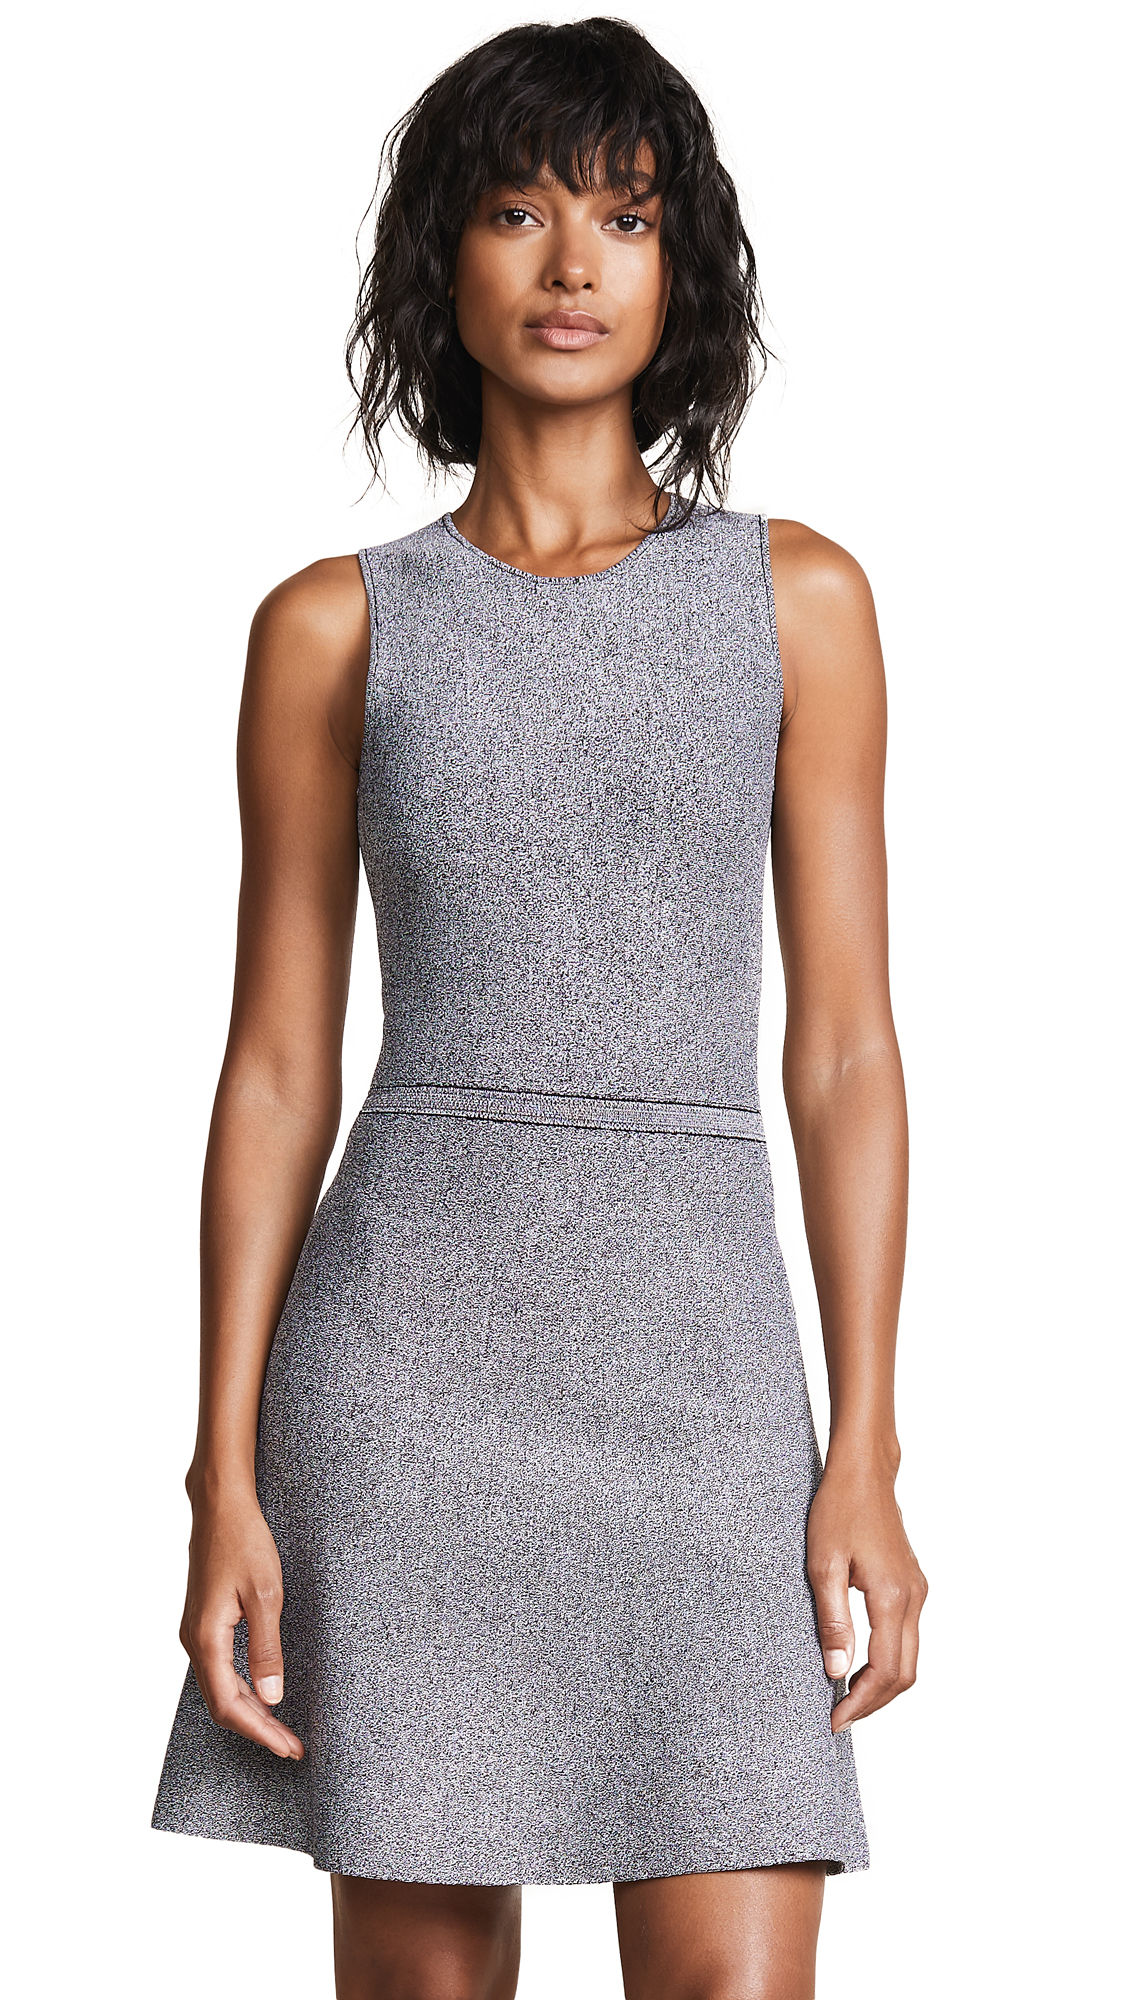 Theory Flare Knit Dress - Black/White